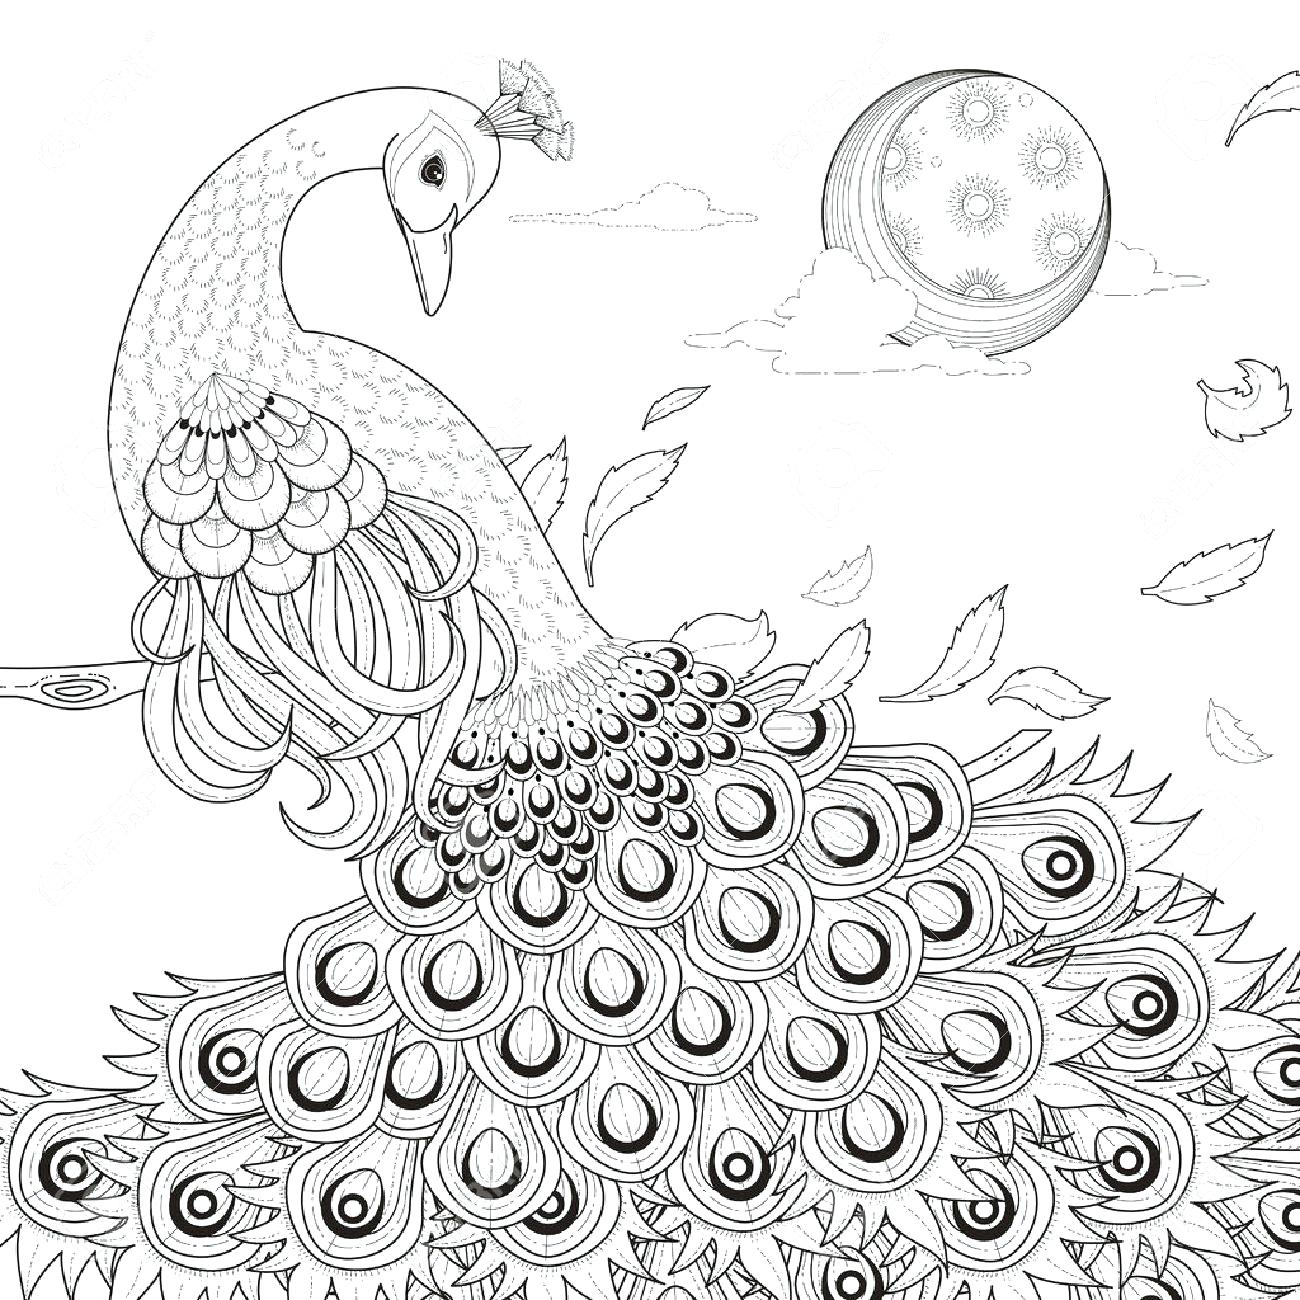 1300x1300 coloring Peacock Coloring Pages Free Of For Drawing Page Advanced